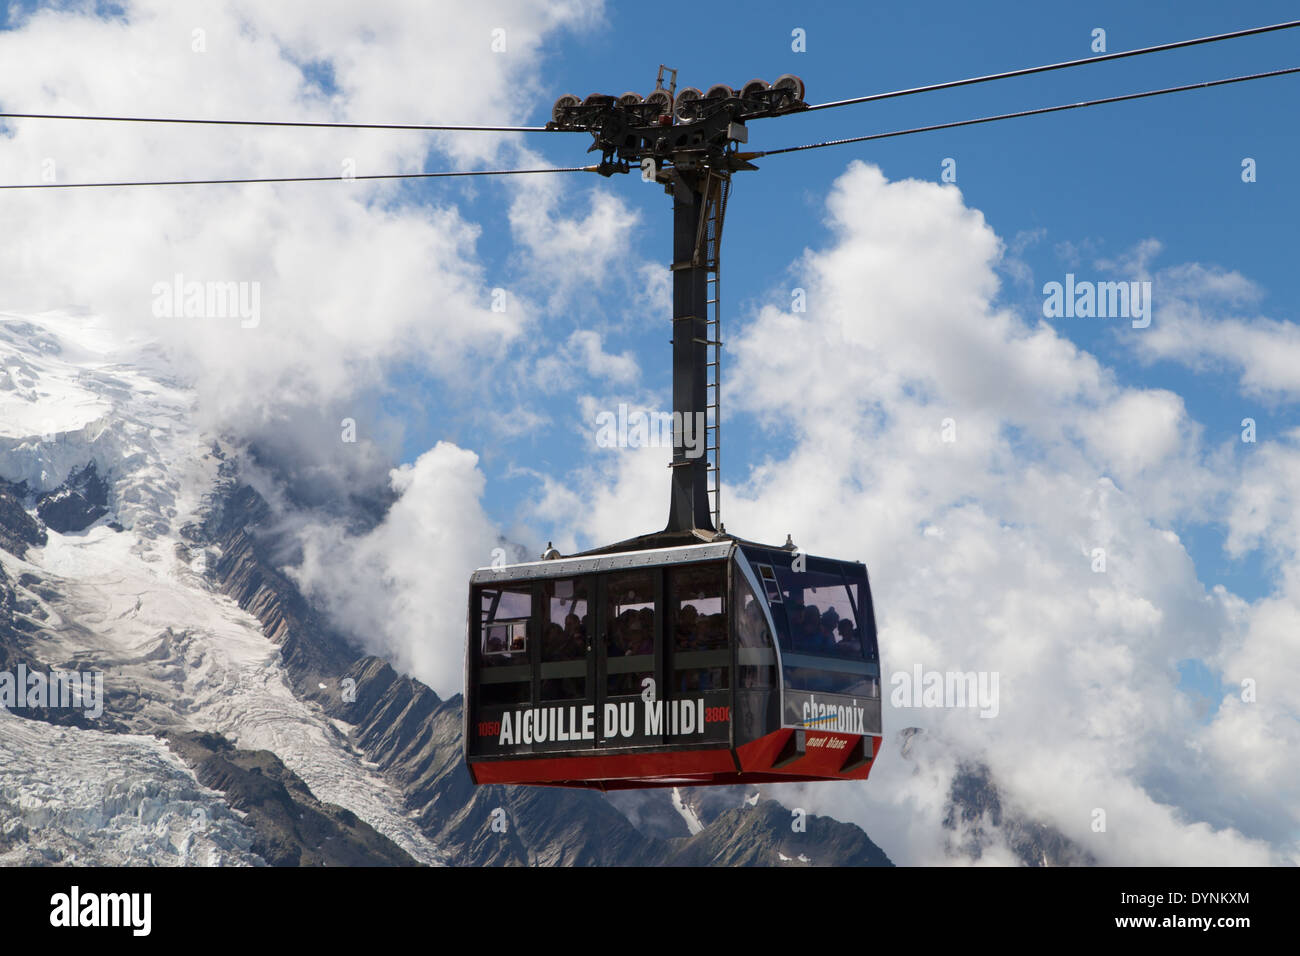 Cable Car to the summit of the Aiguille du Midi from Chamonix-Mont-Blanc, France. - Stock Image